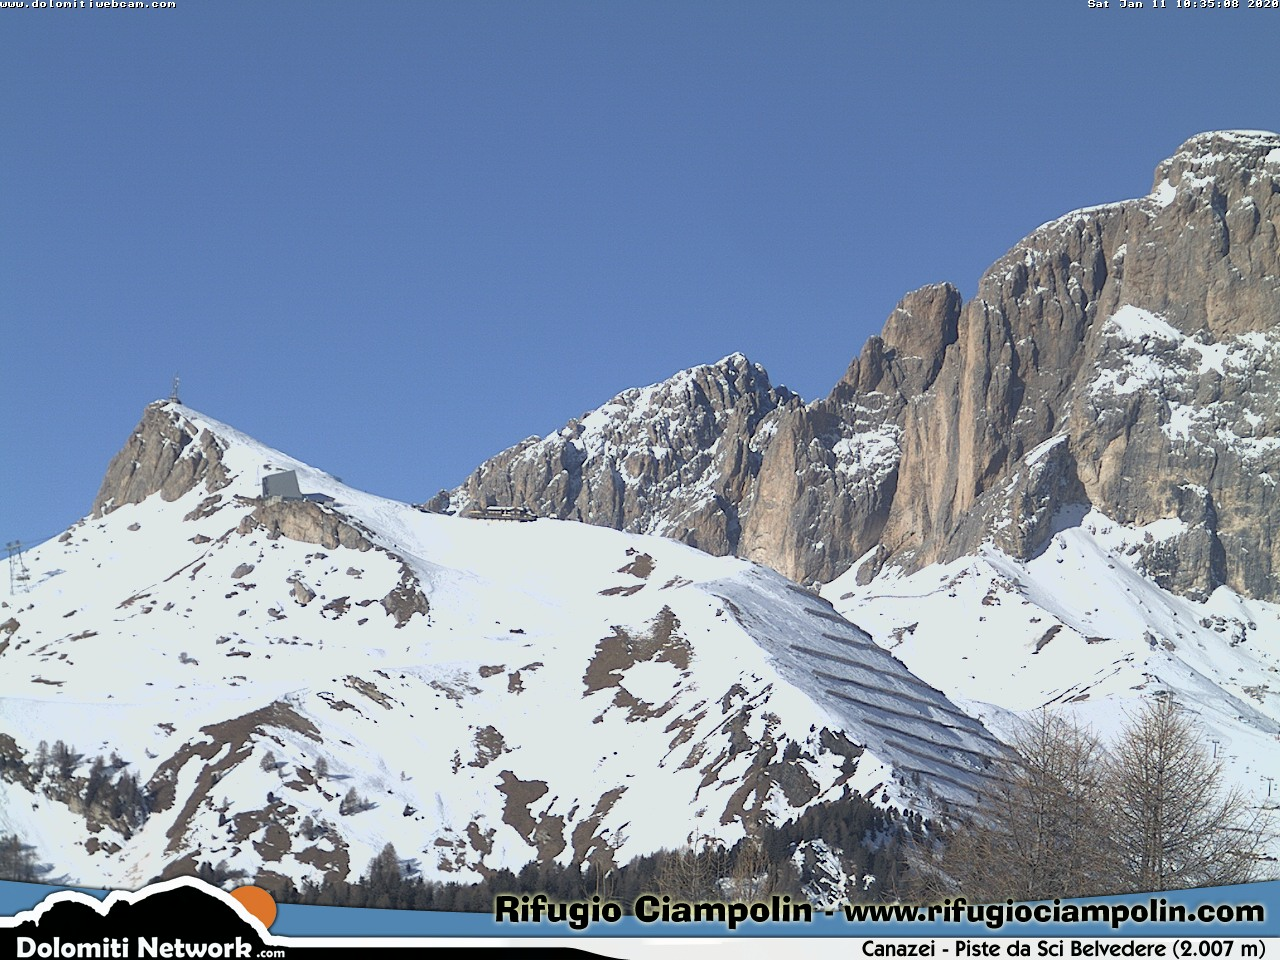 Webcam en Col Rodella, Val di Fassa (Alpes Italianos)